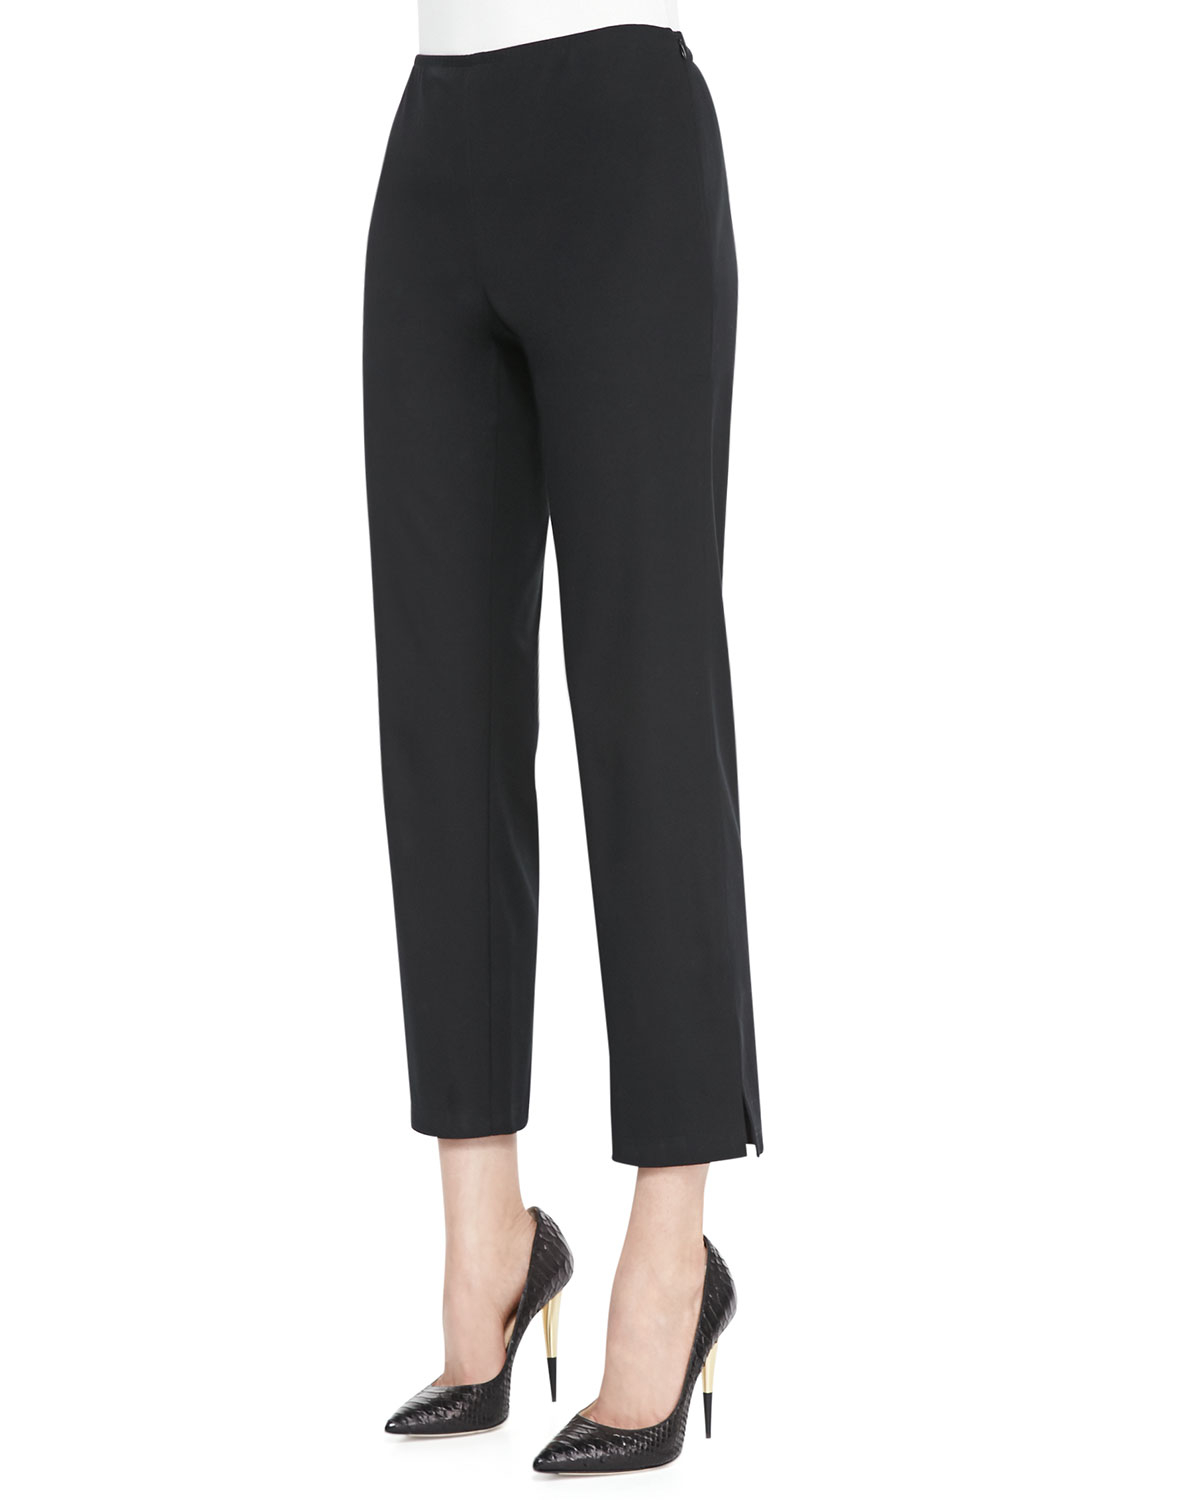 Shop for slim fit ankle pants online at Target. Free shipping on purchases over $35 and save 5% every day with your Target REDcard.